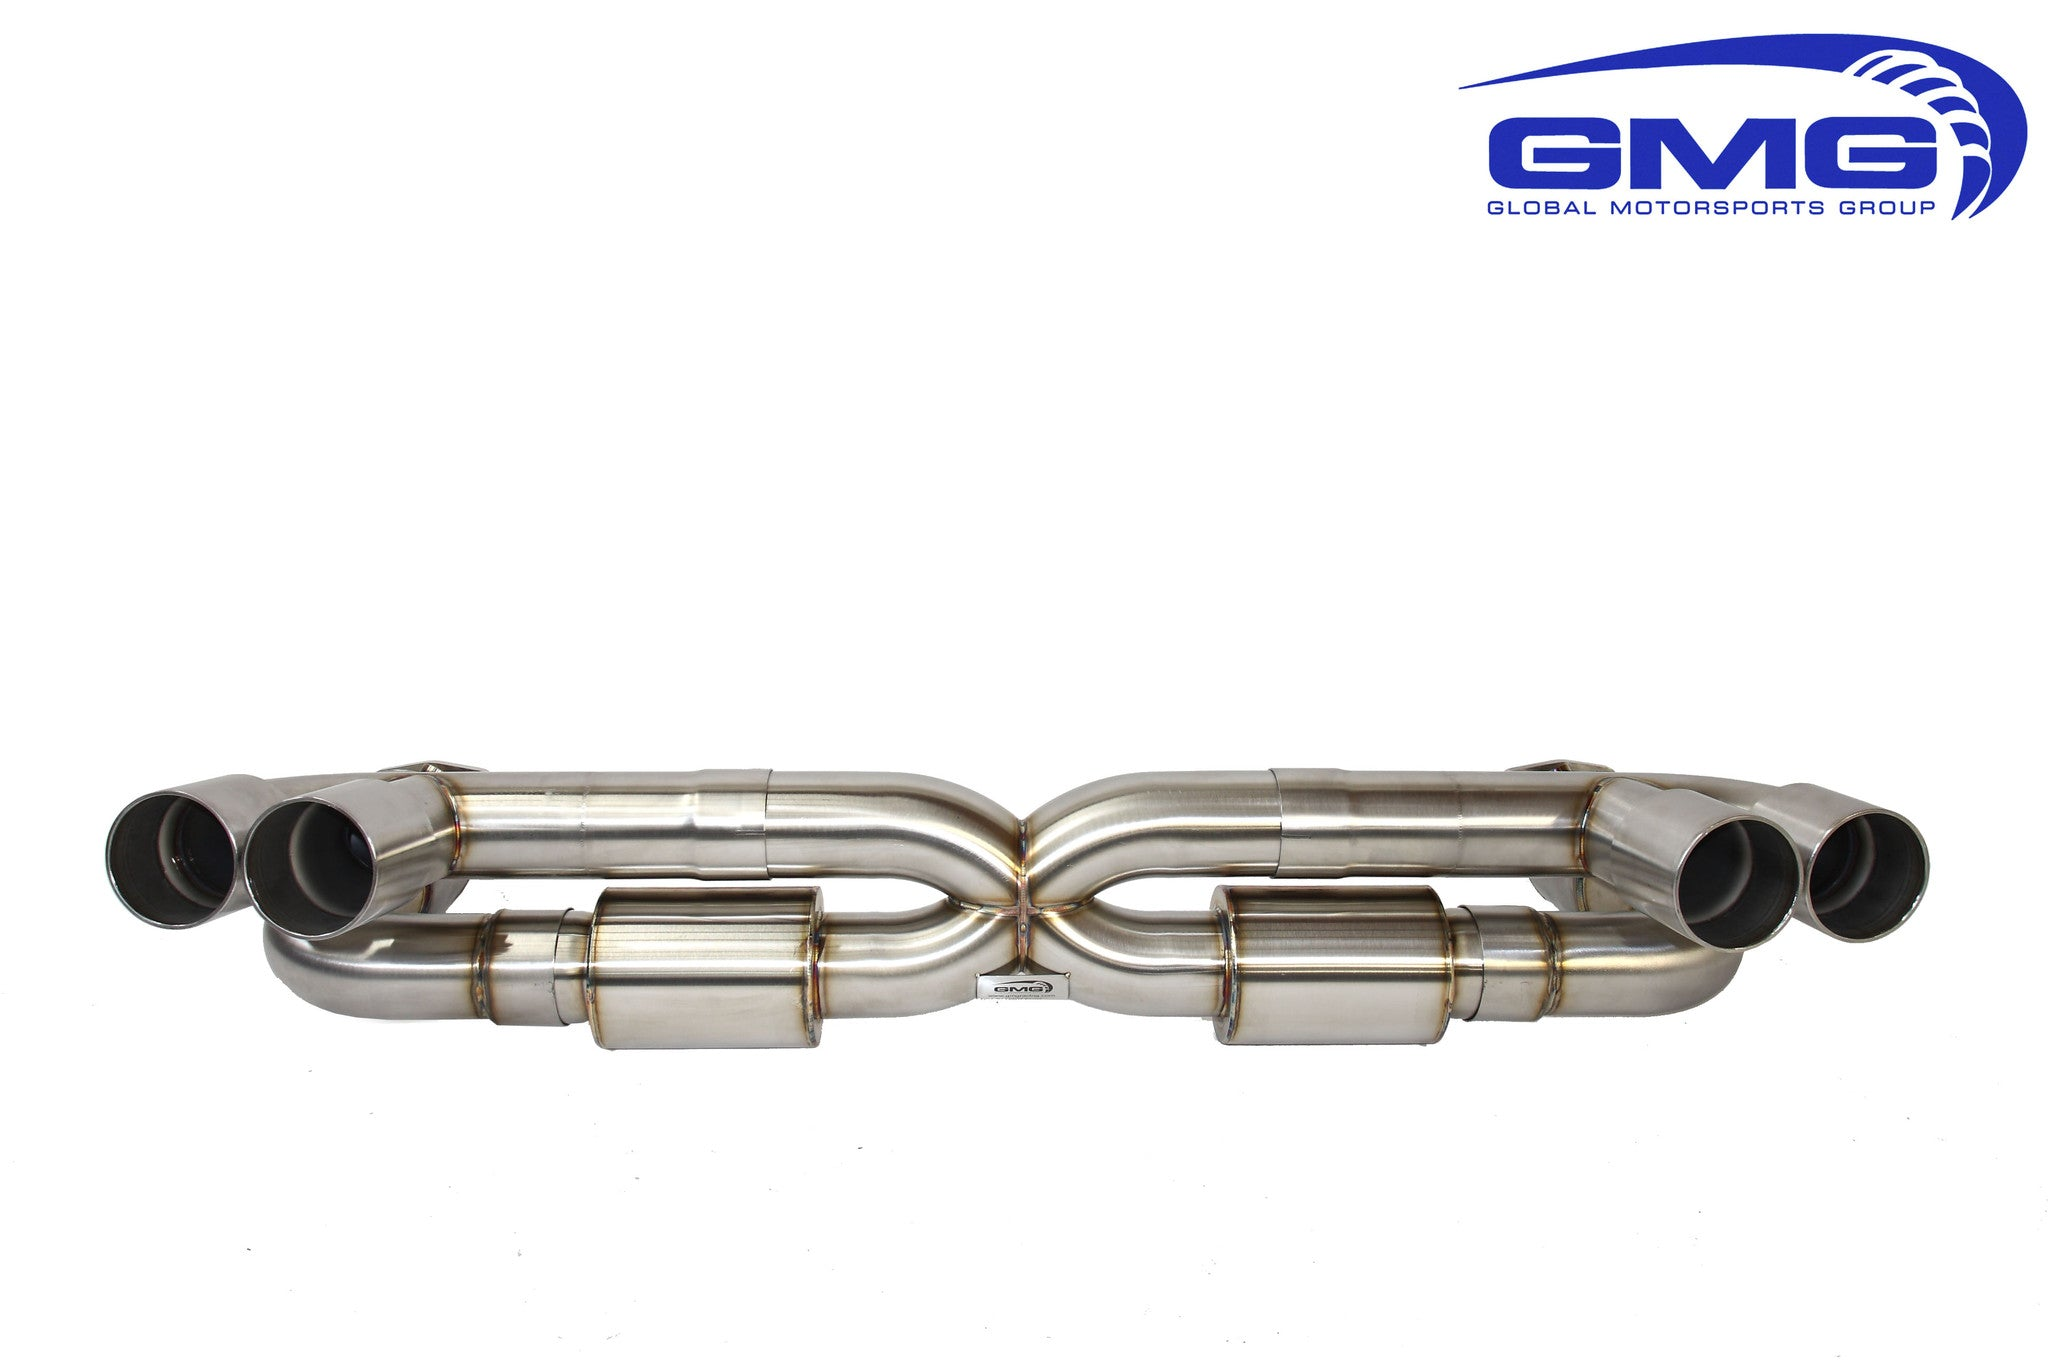 997.1 Turbo GMG WC-Sport Exhaust System